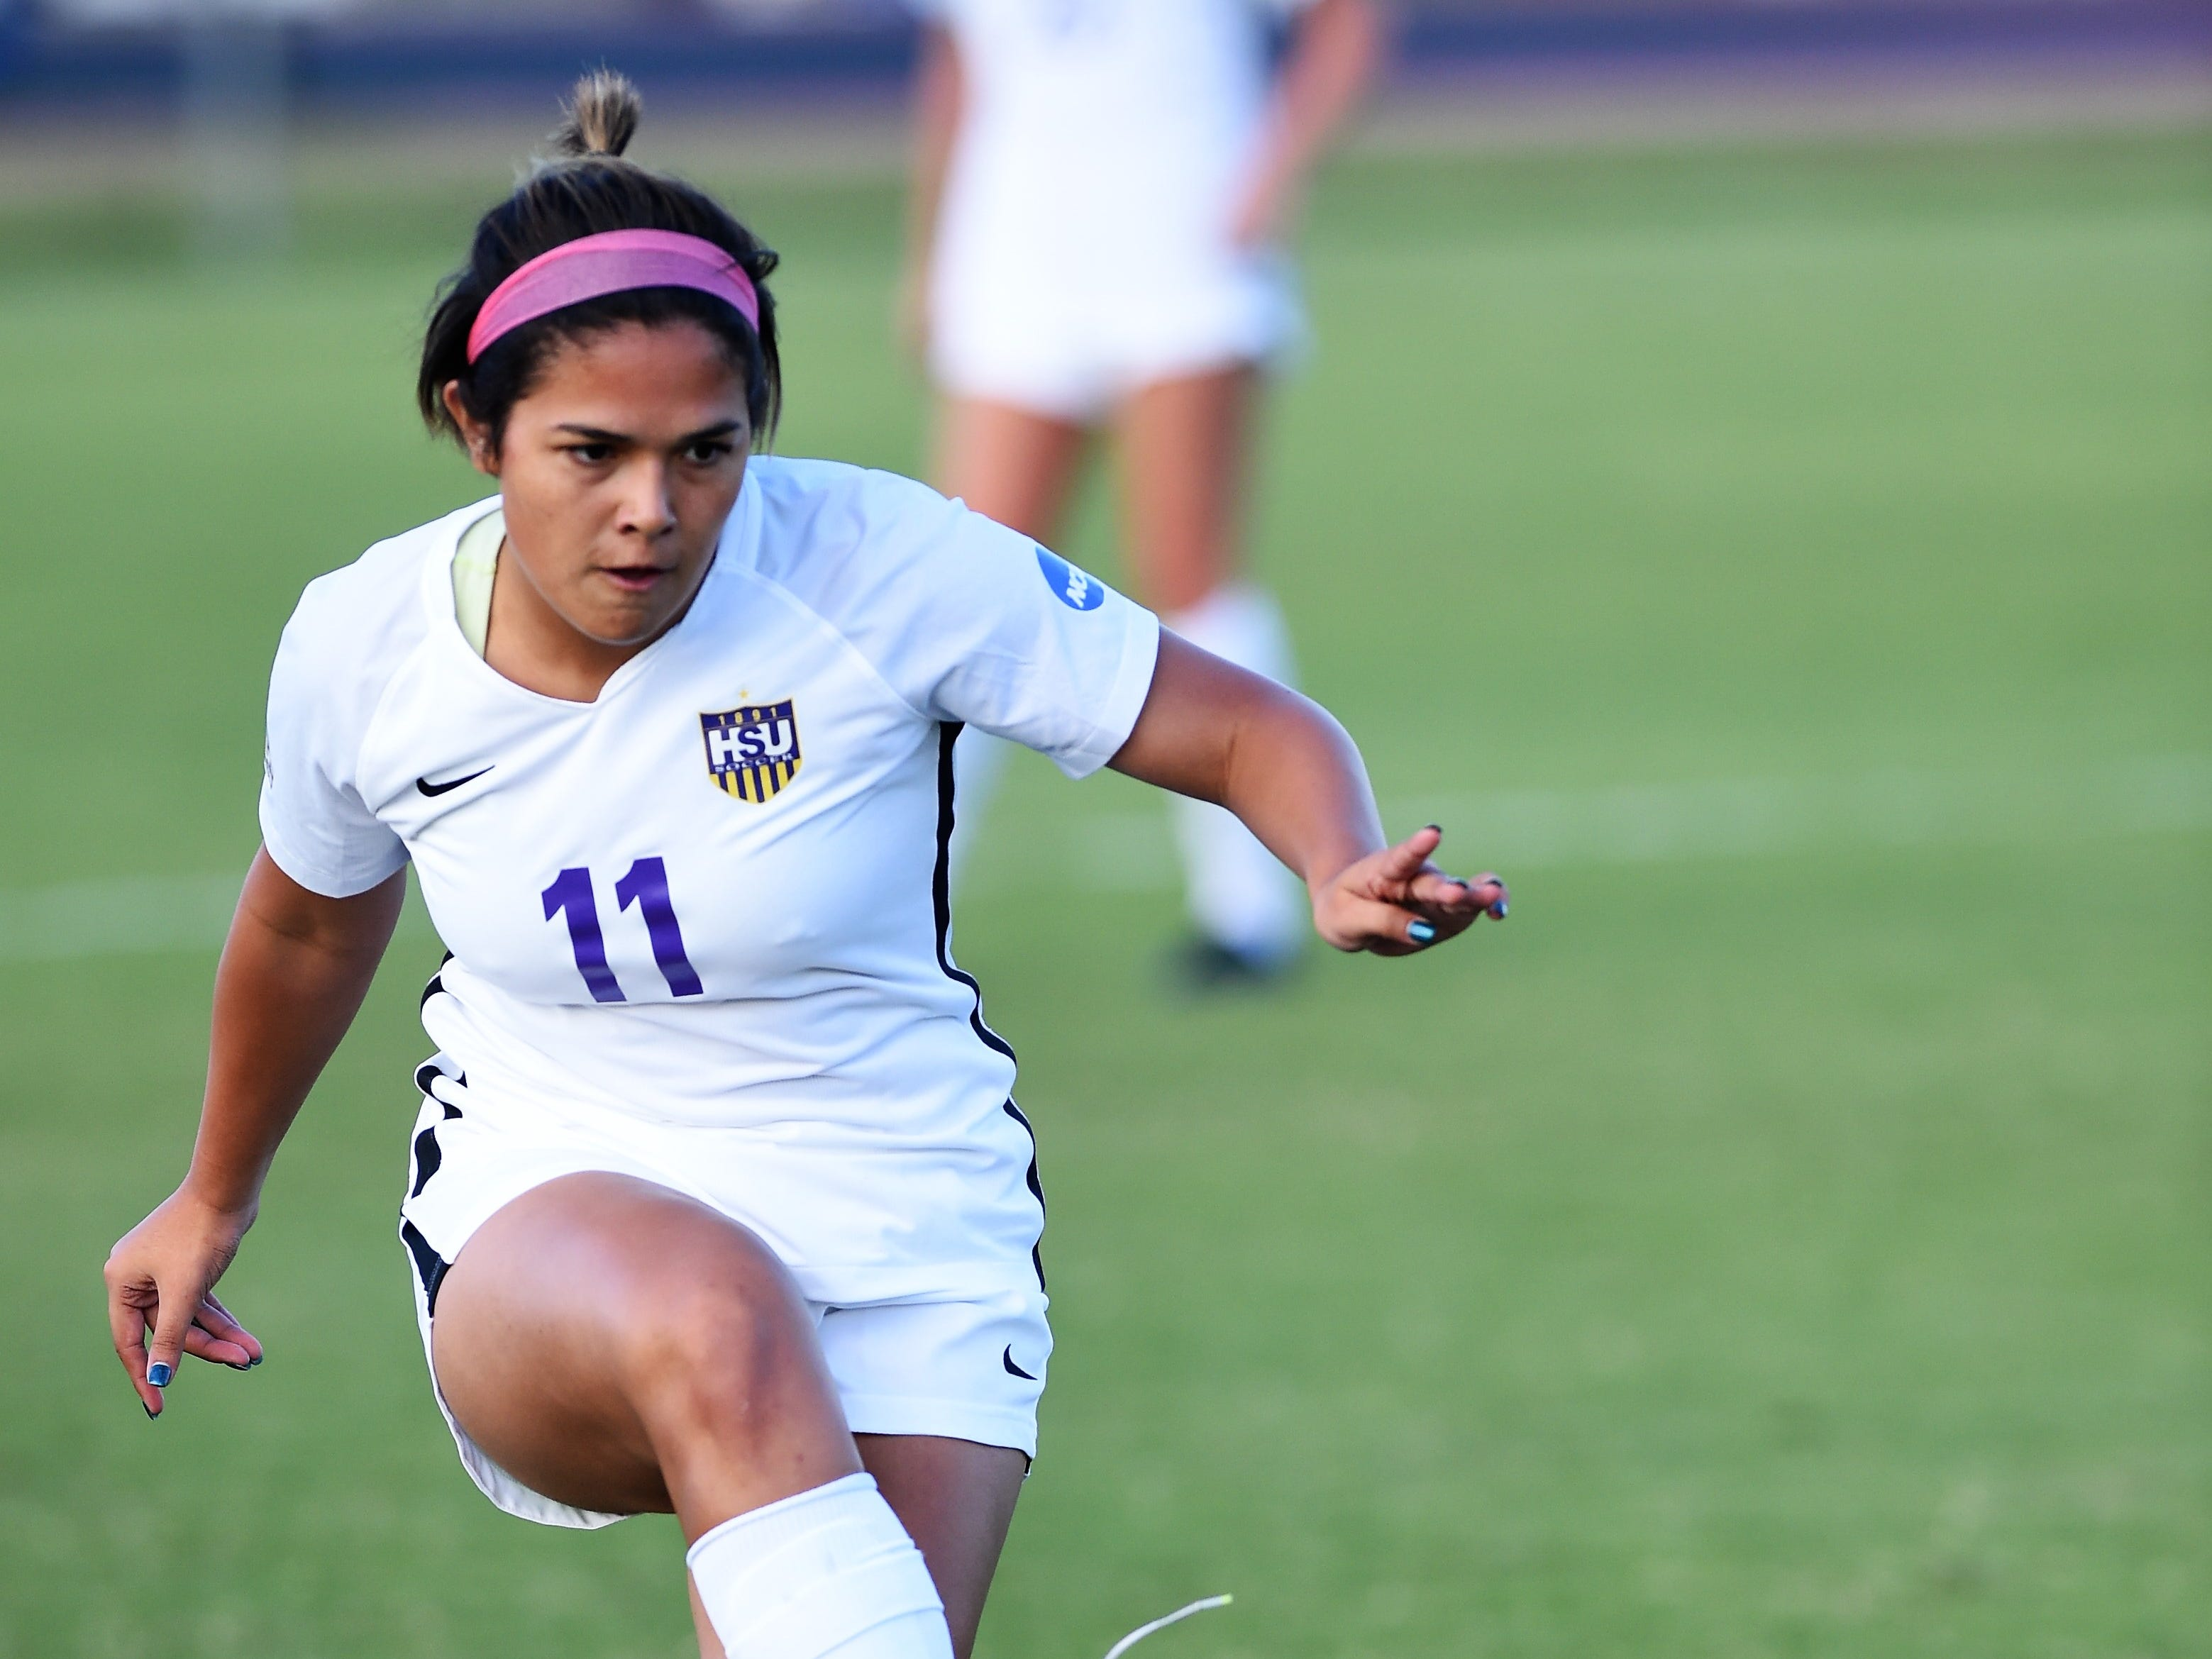 Hardin-Simmons defender Avery Lara (11) makes a pass against Howard Payne at the HSU Soccer Complex on Thursday, Oct. 11, 2018. The Cowgirls won 4-1.